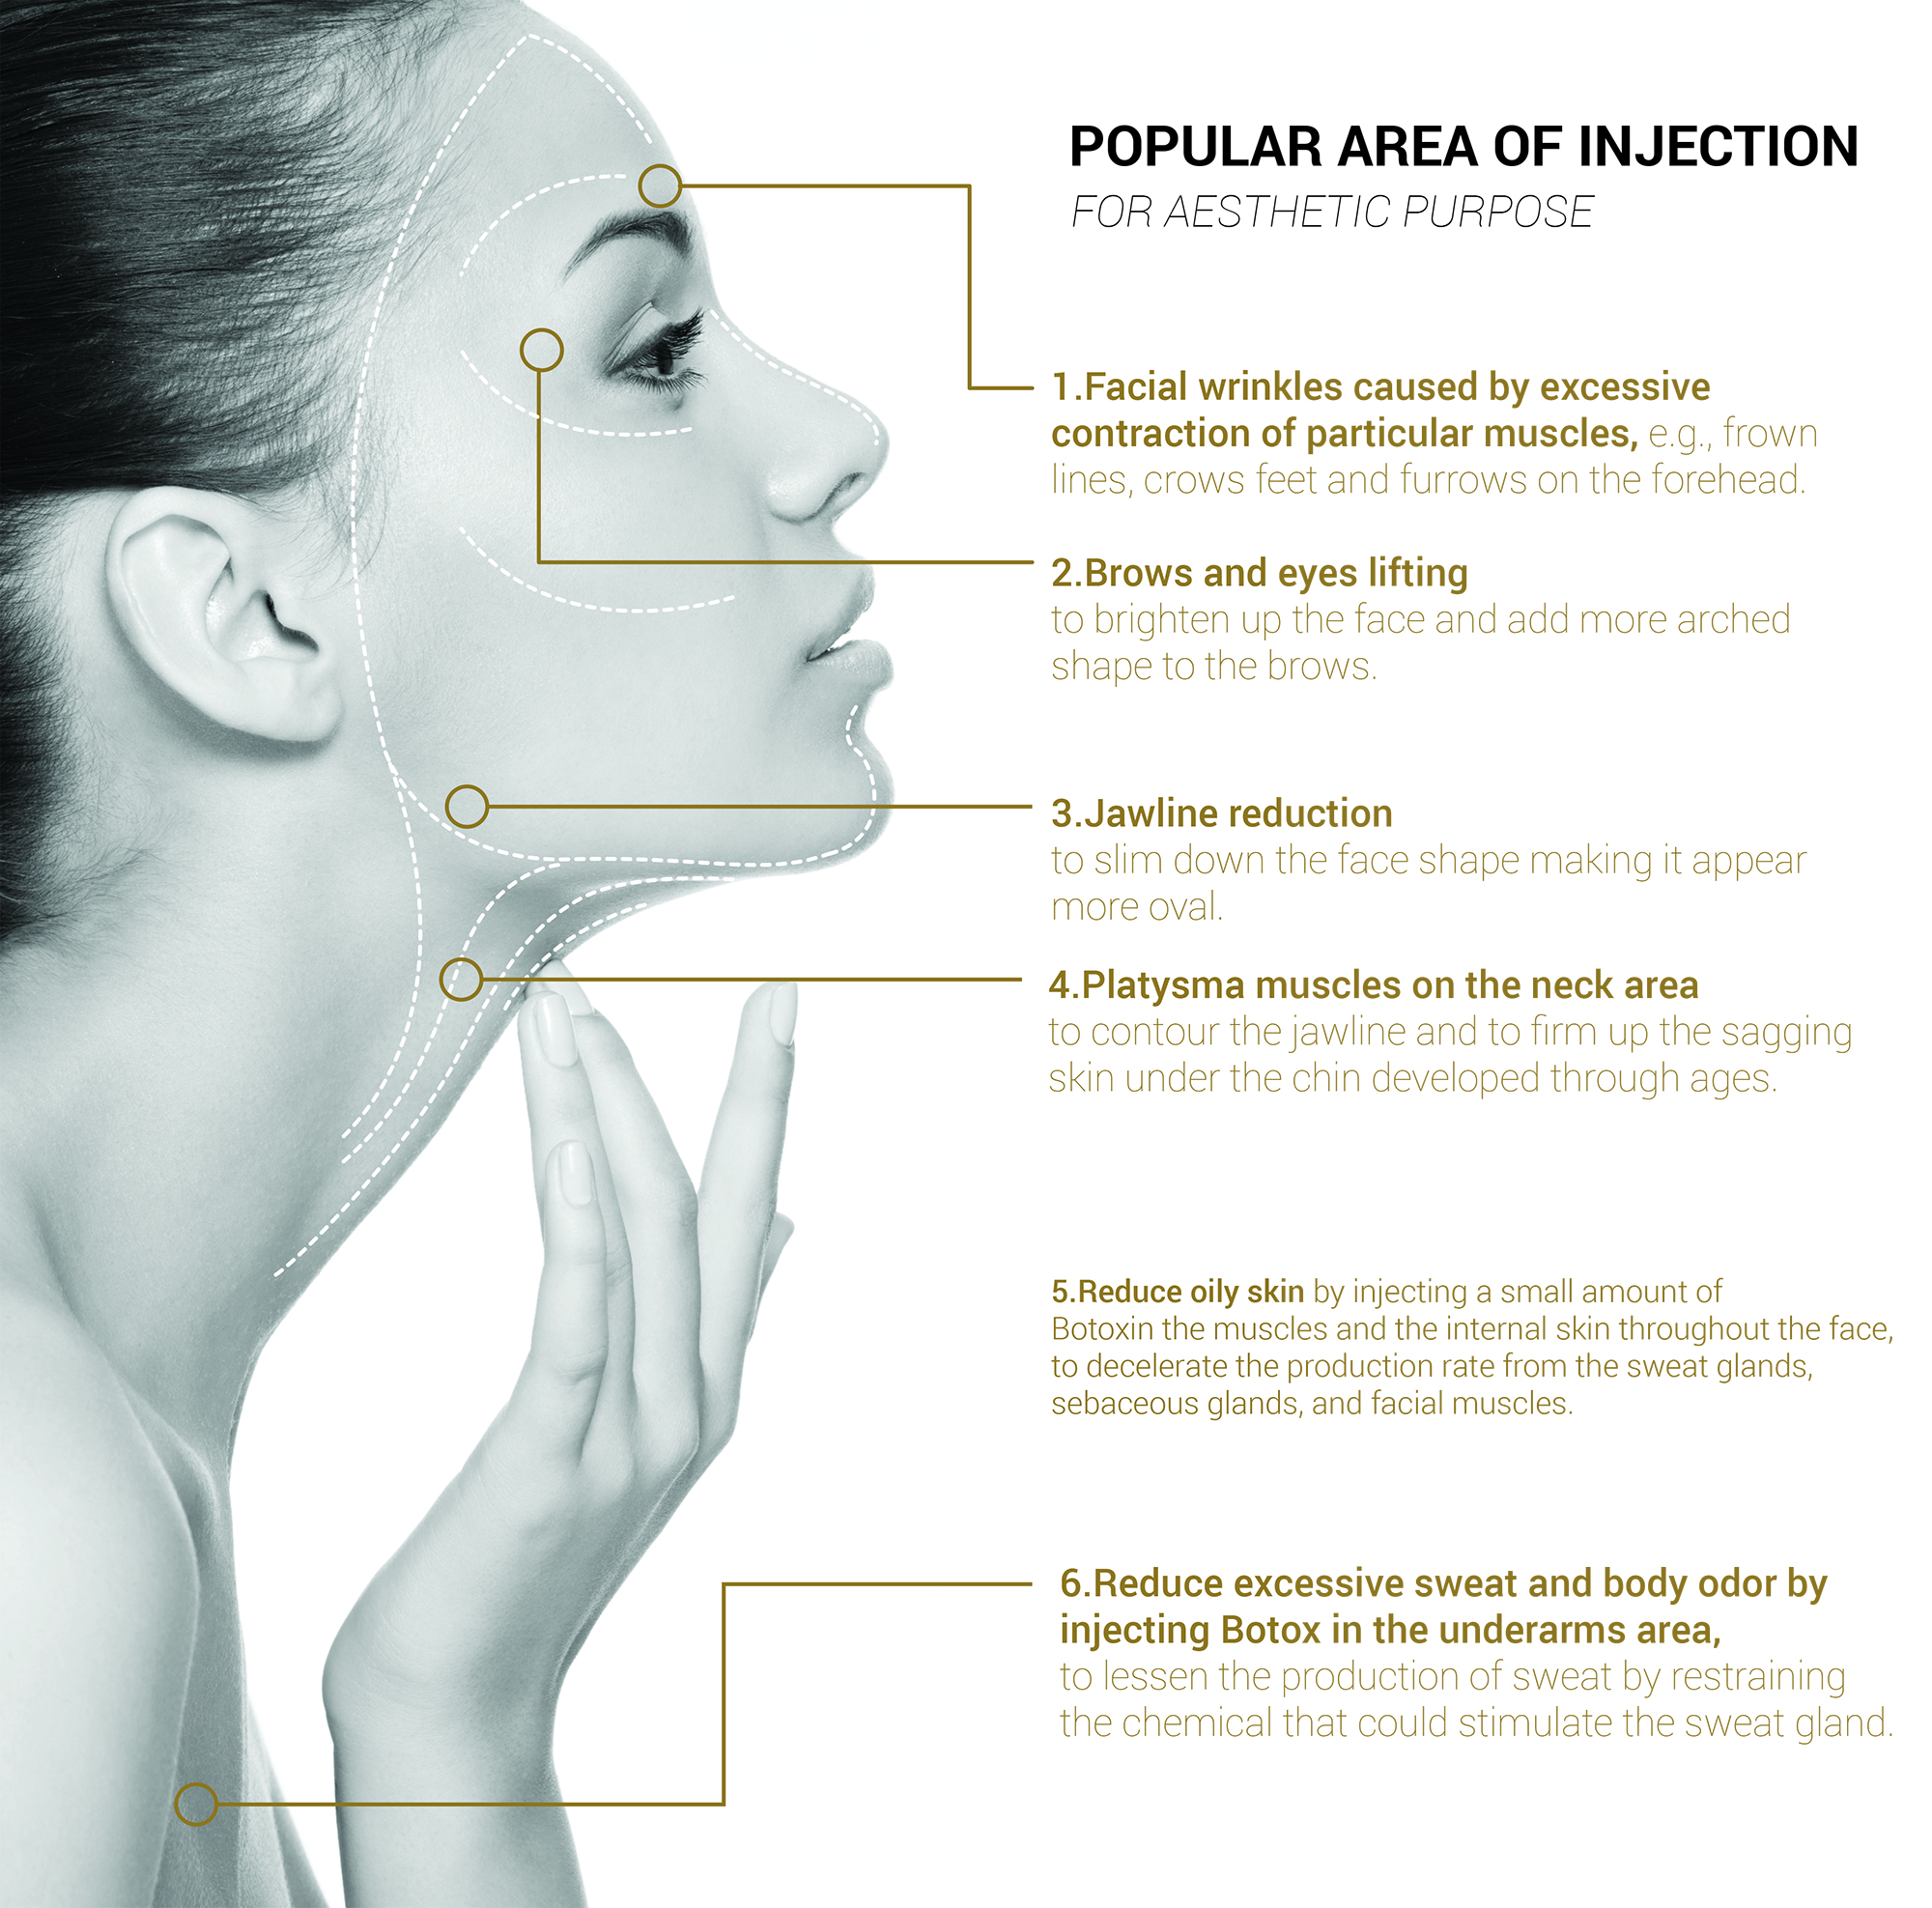 Popular Area of Injection for Aesthetic Purpose